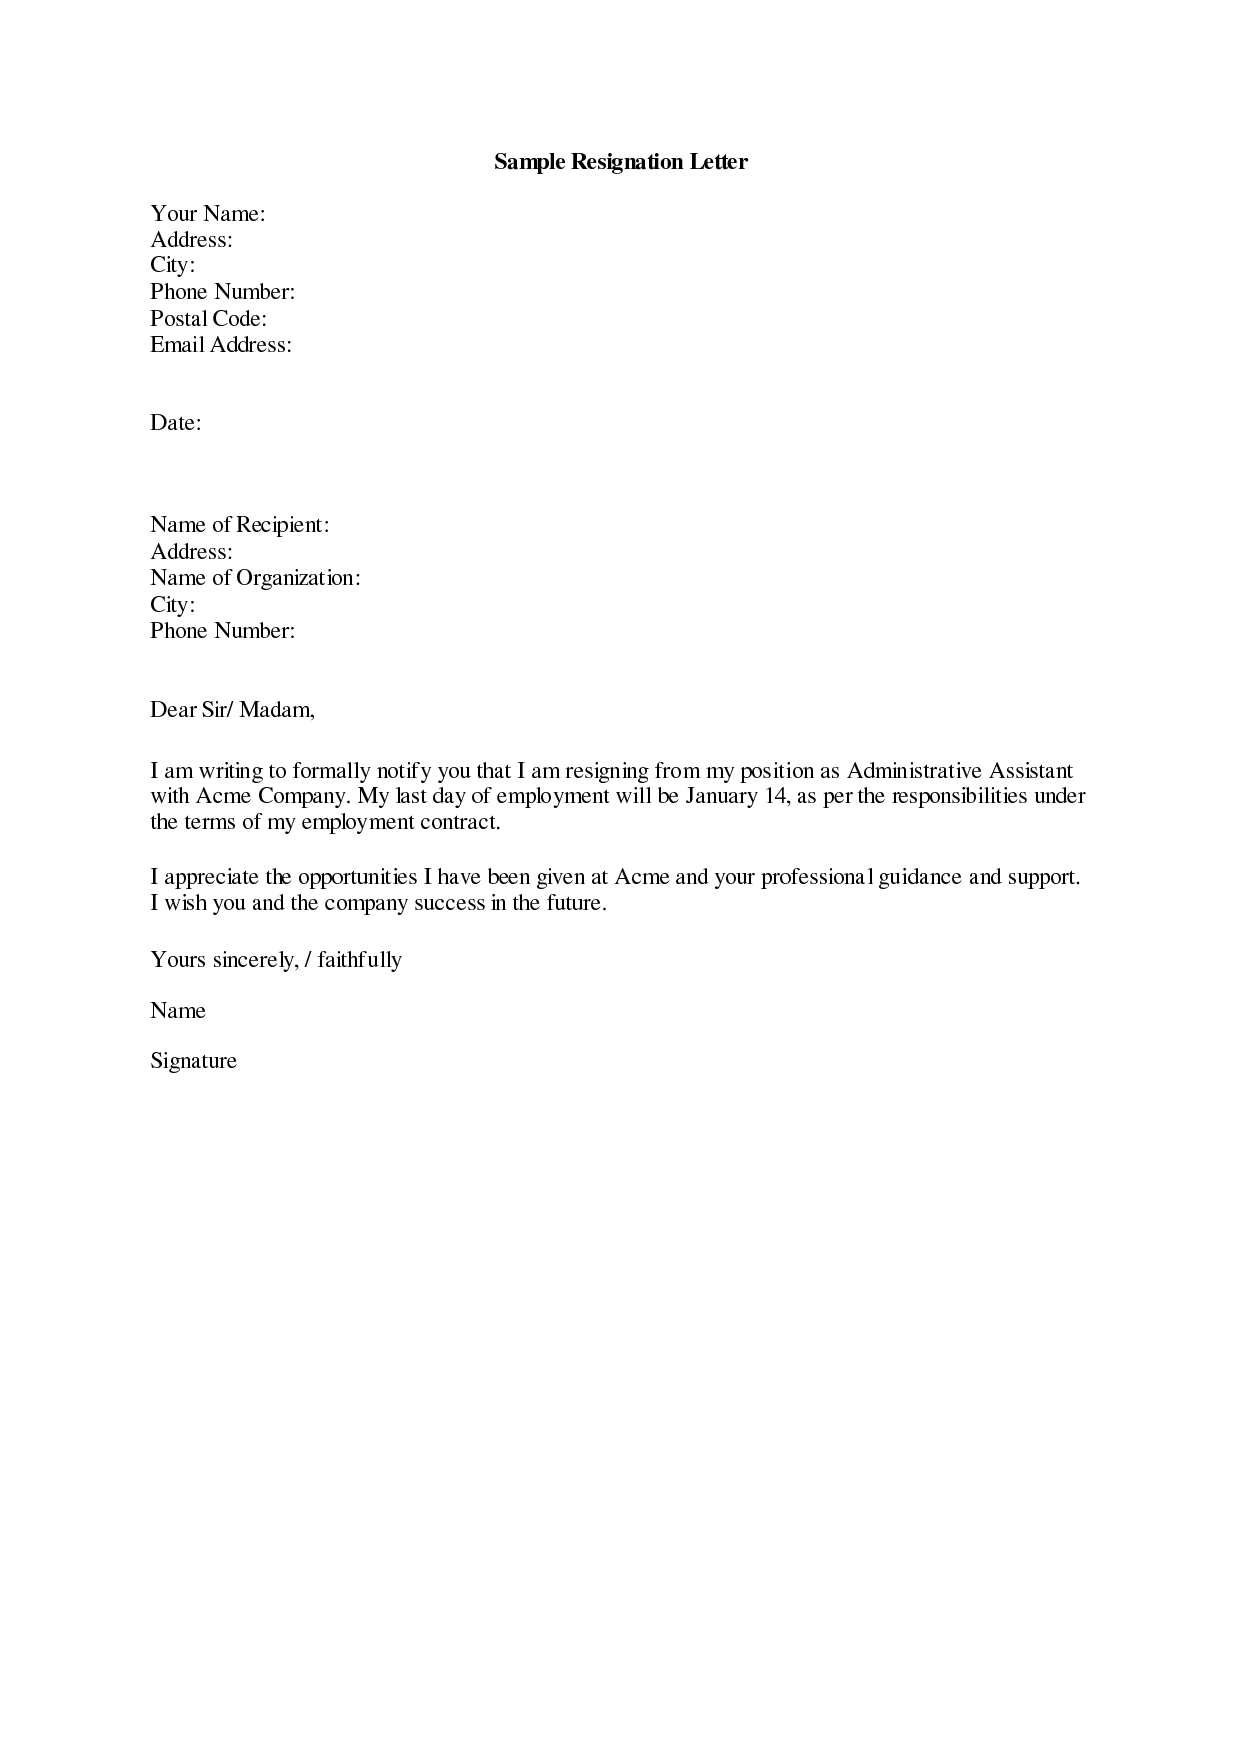 resignationlettersample19 letter of resignation – Write a Resign Letter